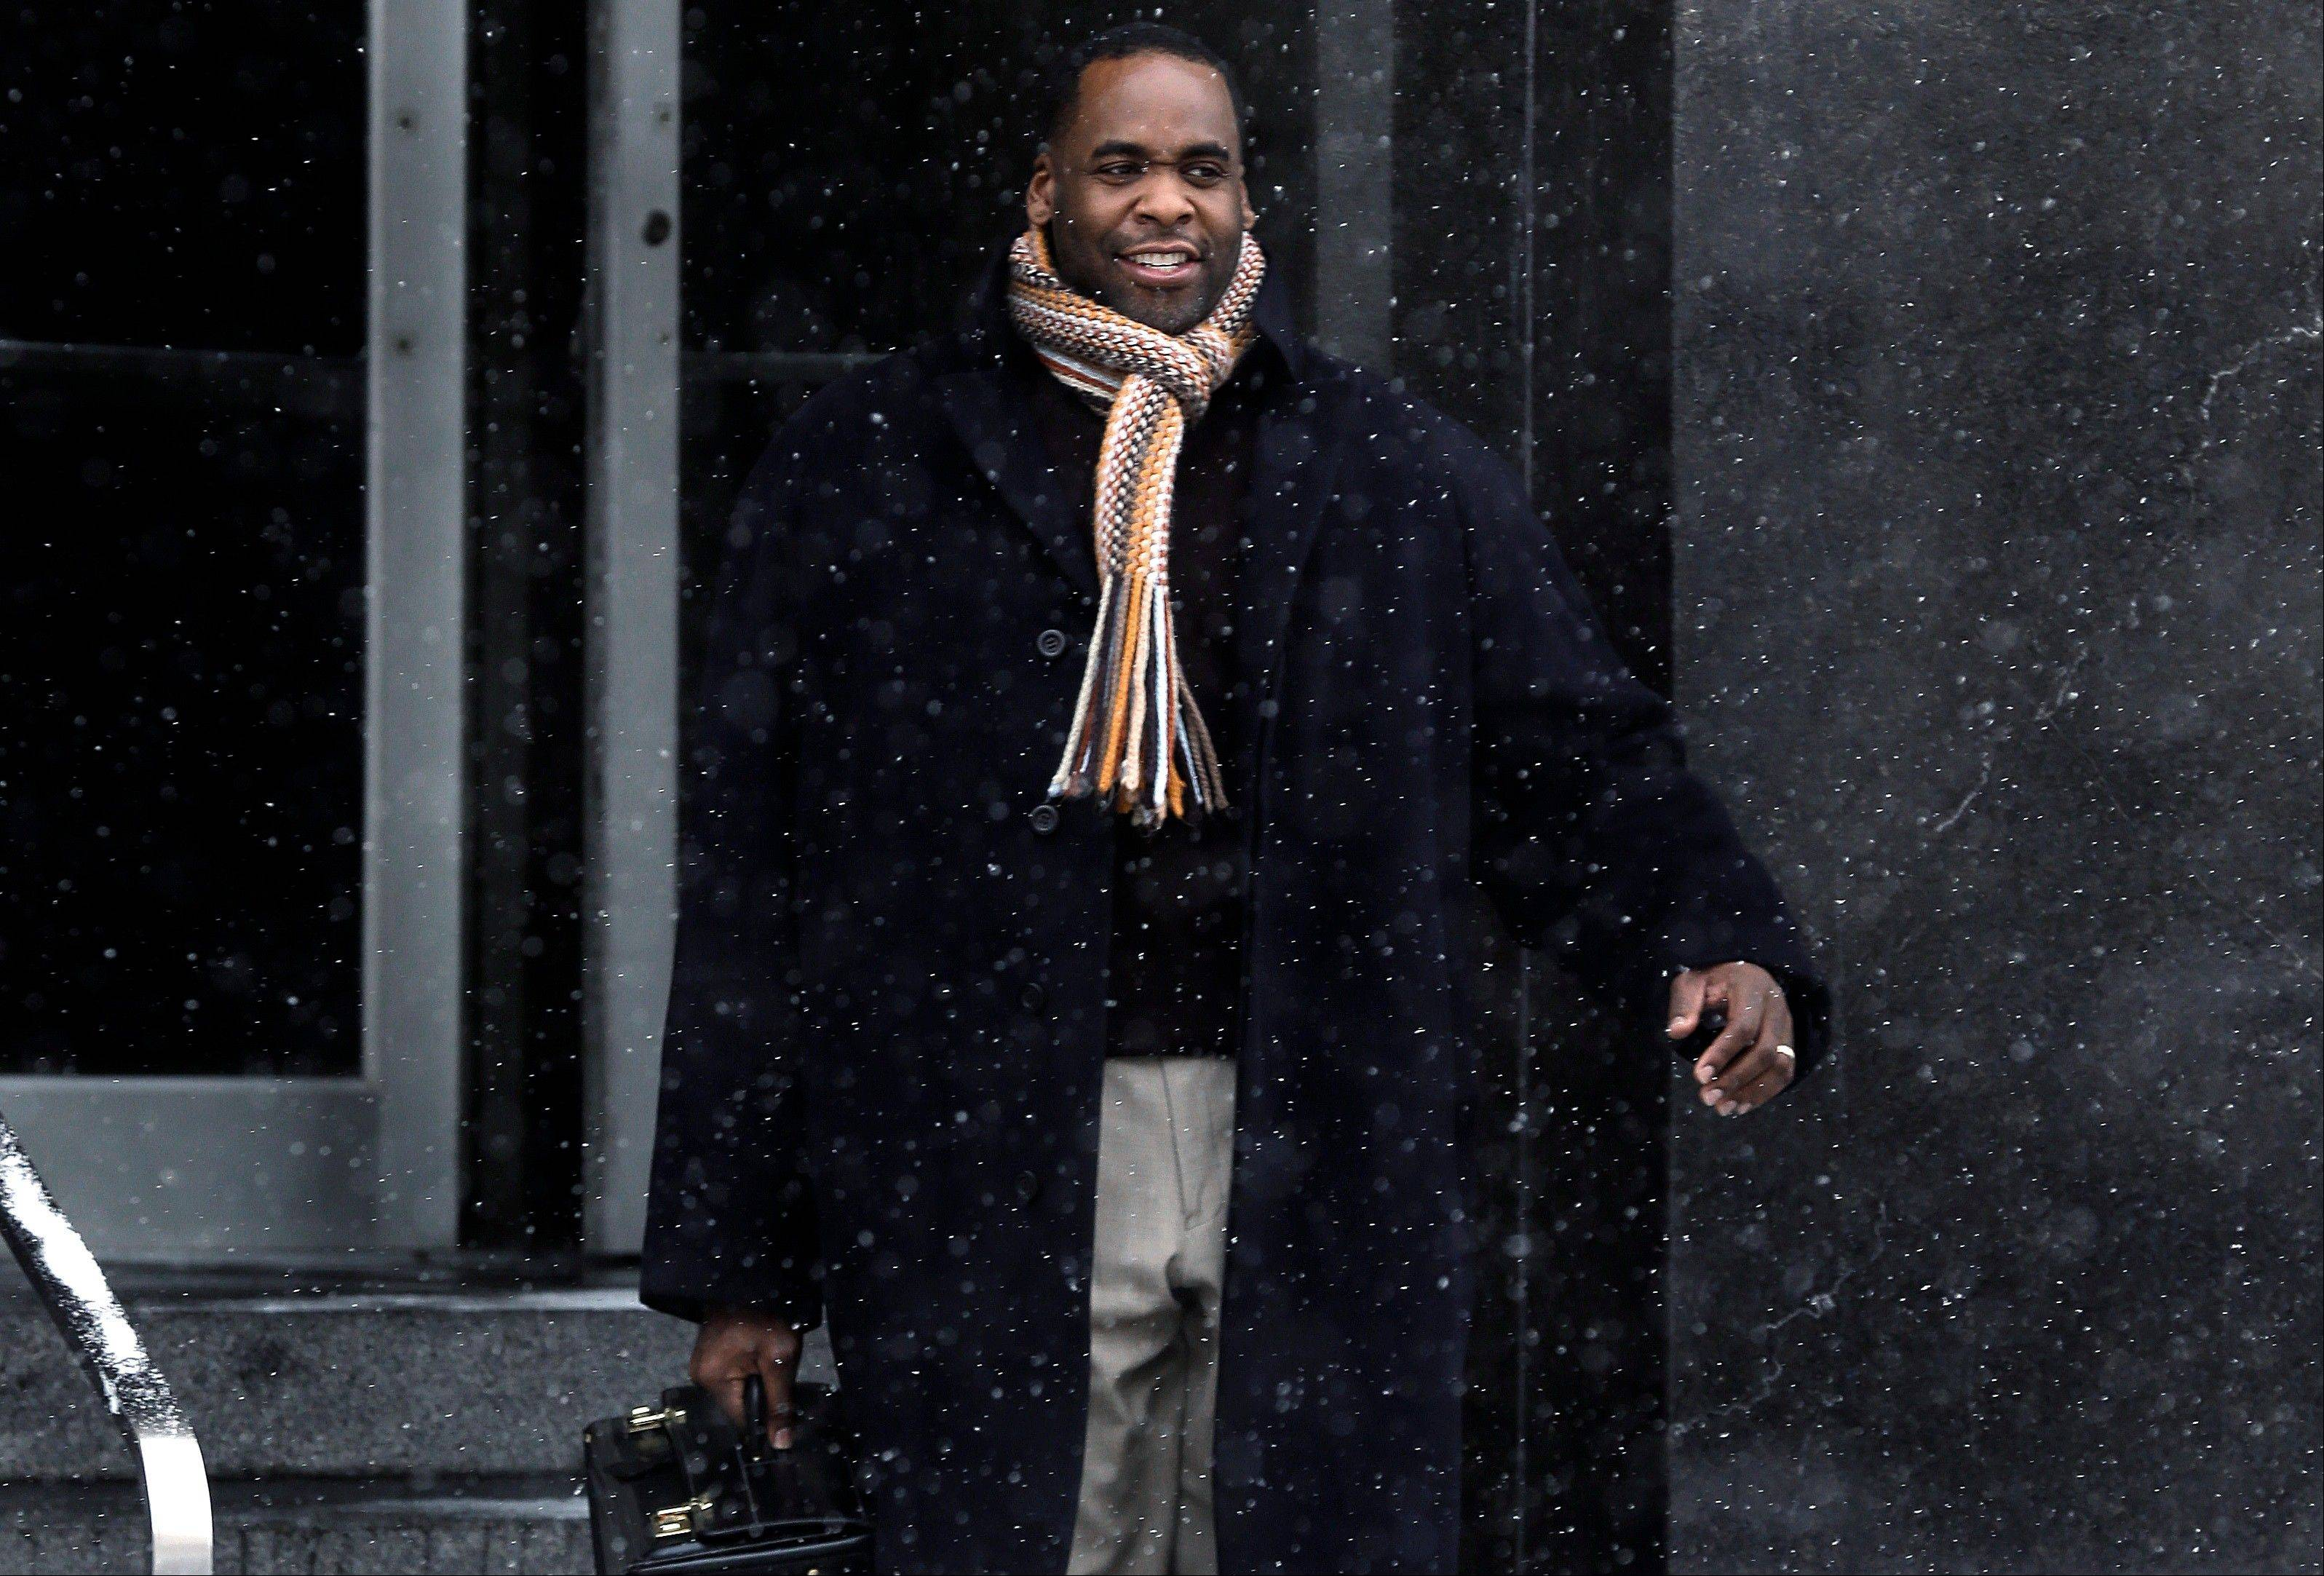 Former Detroit Mayor Kwame Kilpatrick was convicted Monday of corruption charges.